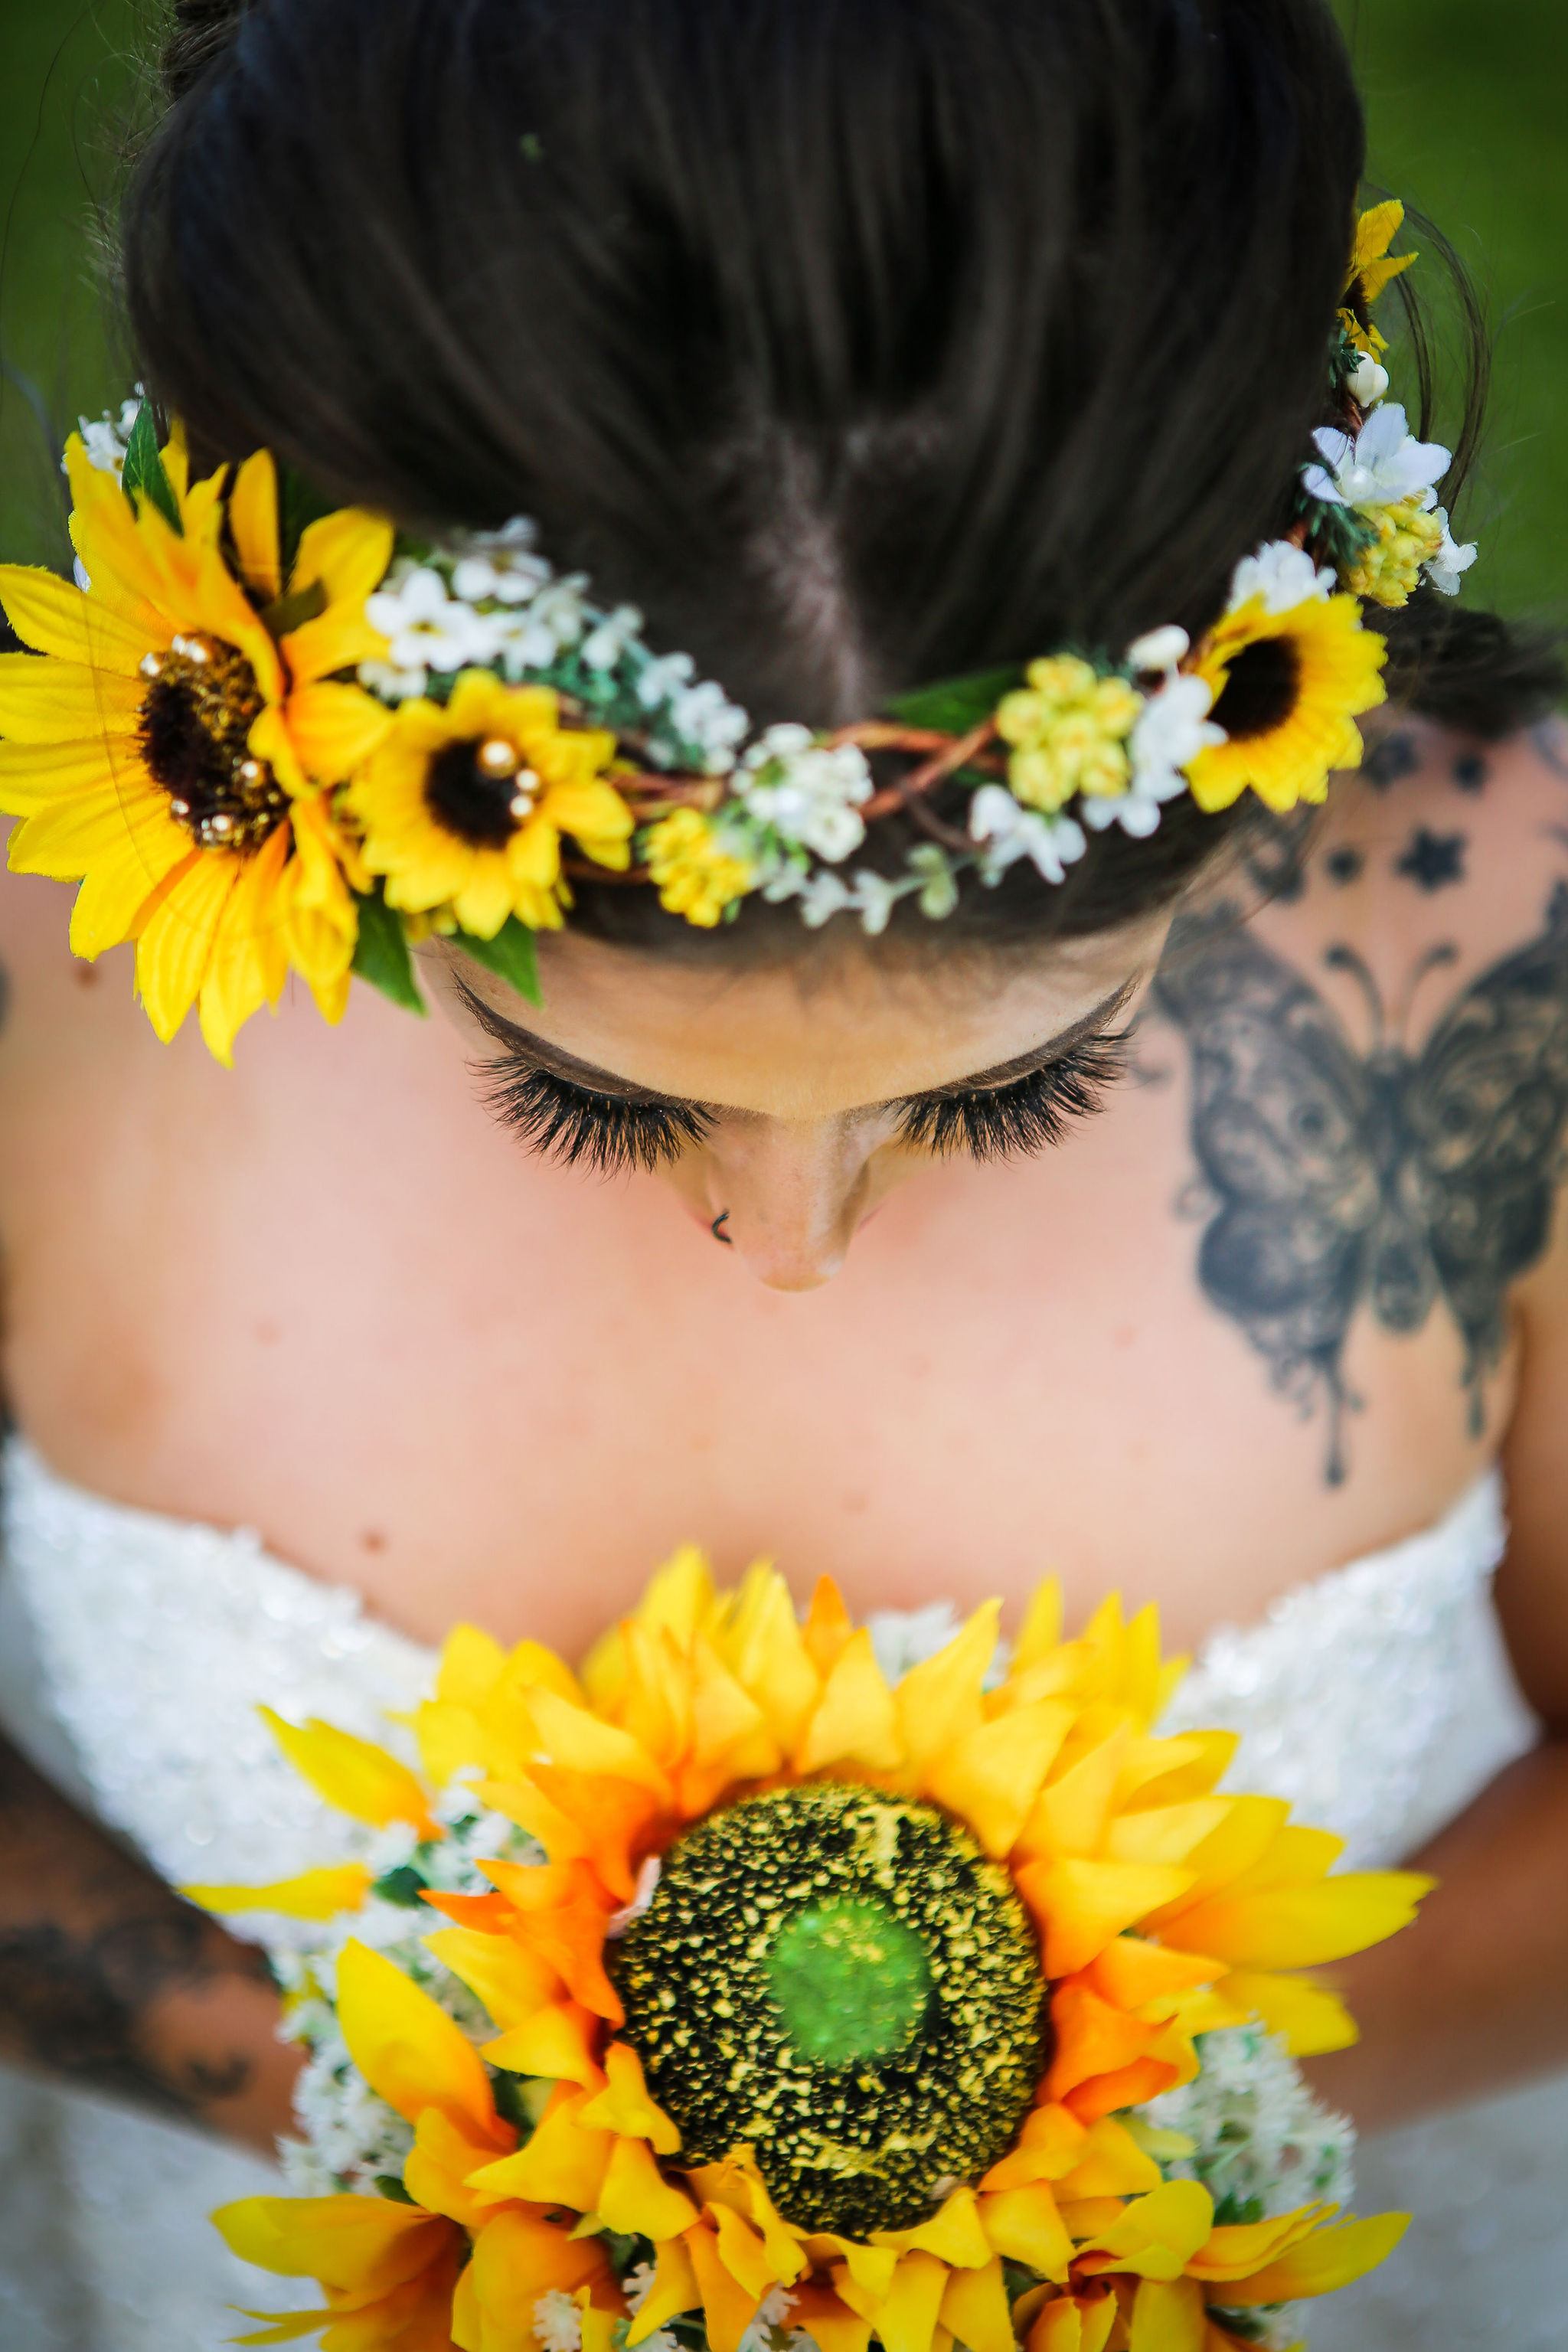 Harriet&Rhys Wedding - Magical sunflower wedding - alternative bride with sunflowers - alternative wedding - unconventional wedding